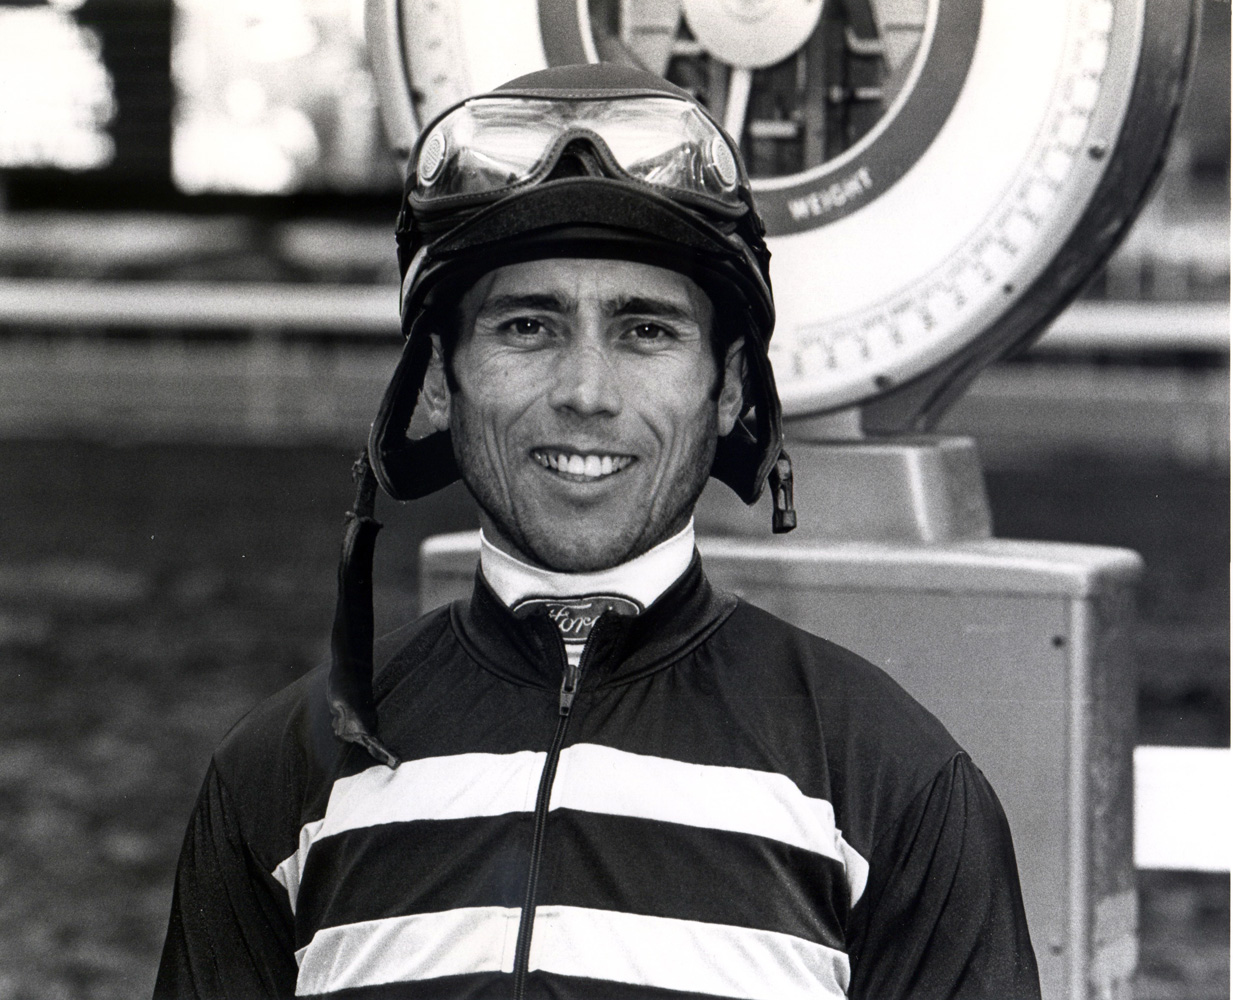 Garrett Gomez weighing in after a win at Santa Anita Park in 2005 (Bill Mochon/Museum Collection)